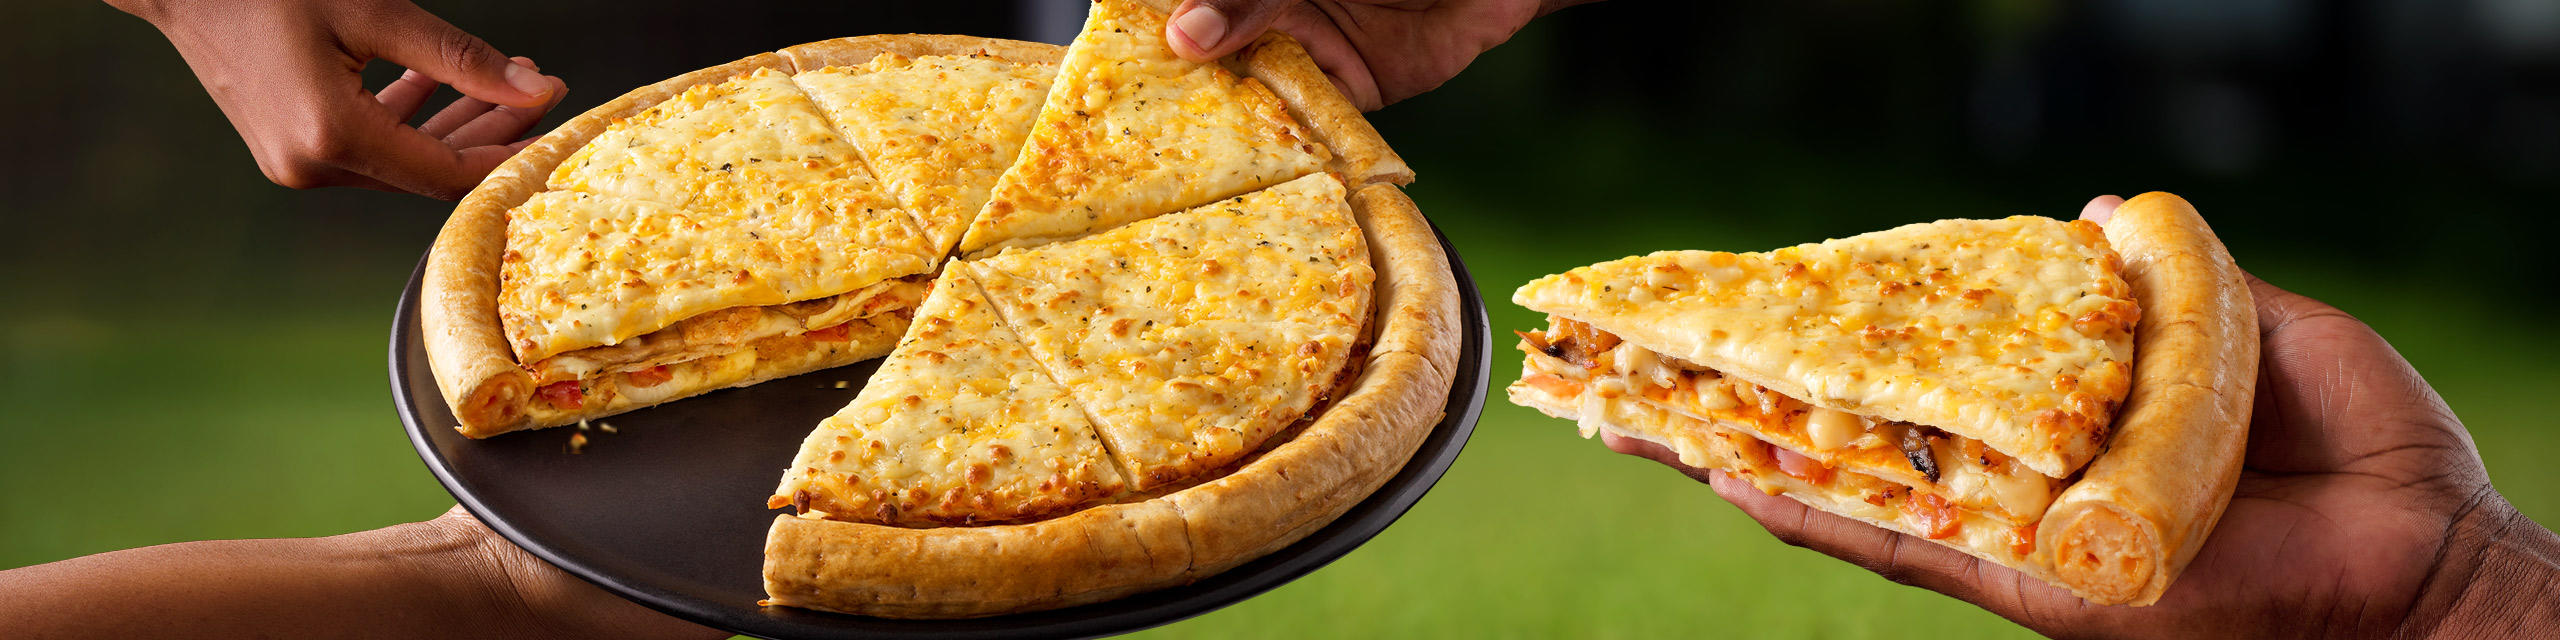 A large Cram-Decker® pizza on a plate with hands grabbing a slice.